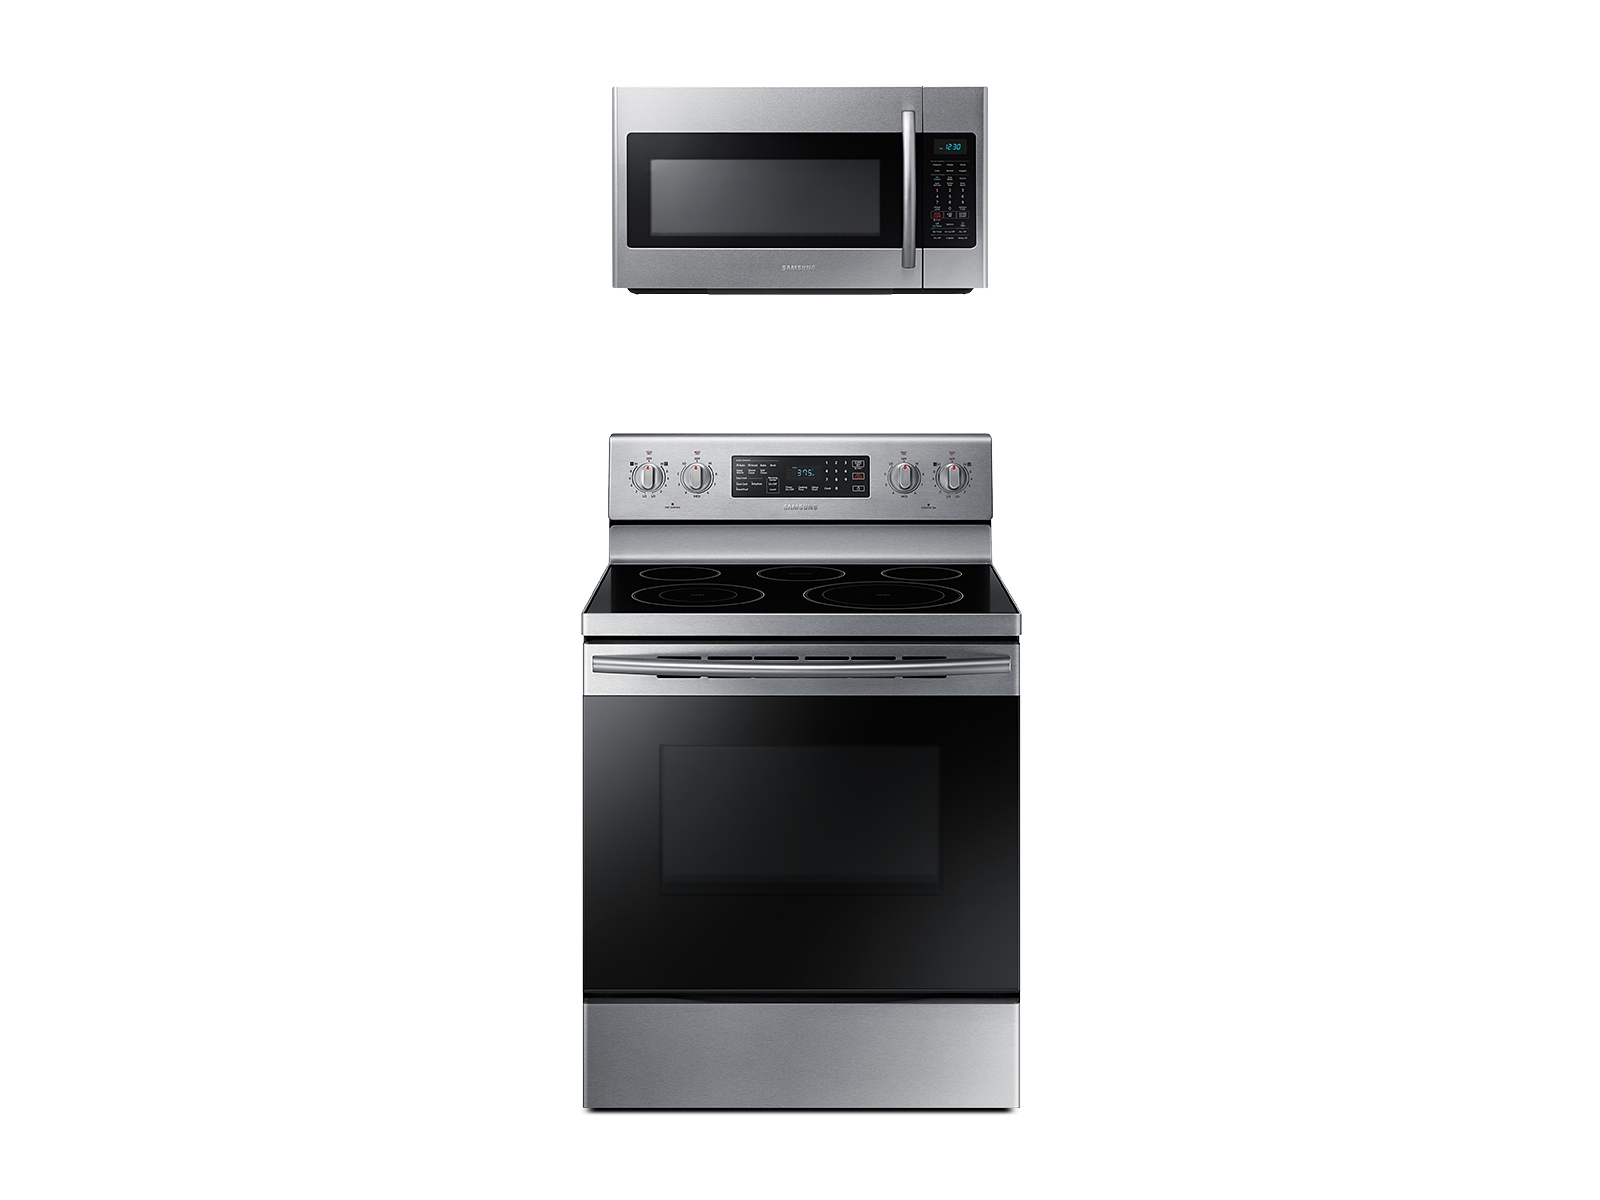 Samsung Freestanding Electric Range with Convection + Over-the-Range Microwave in Stainless Steel